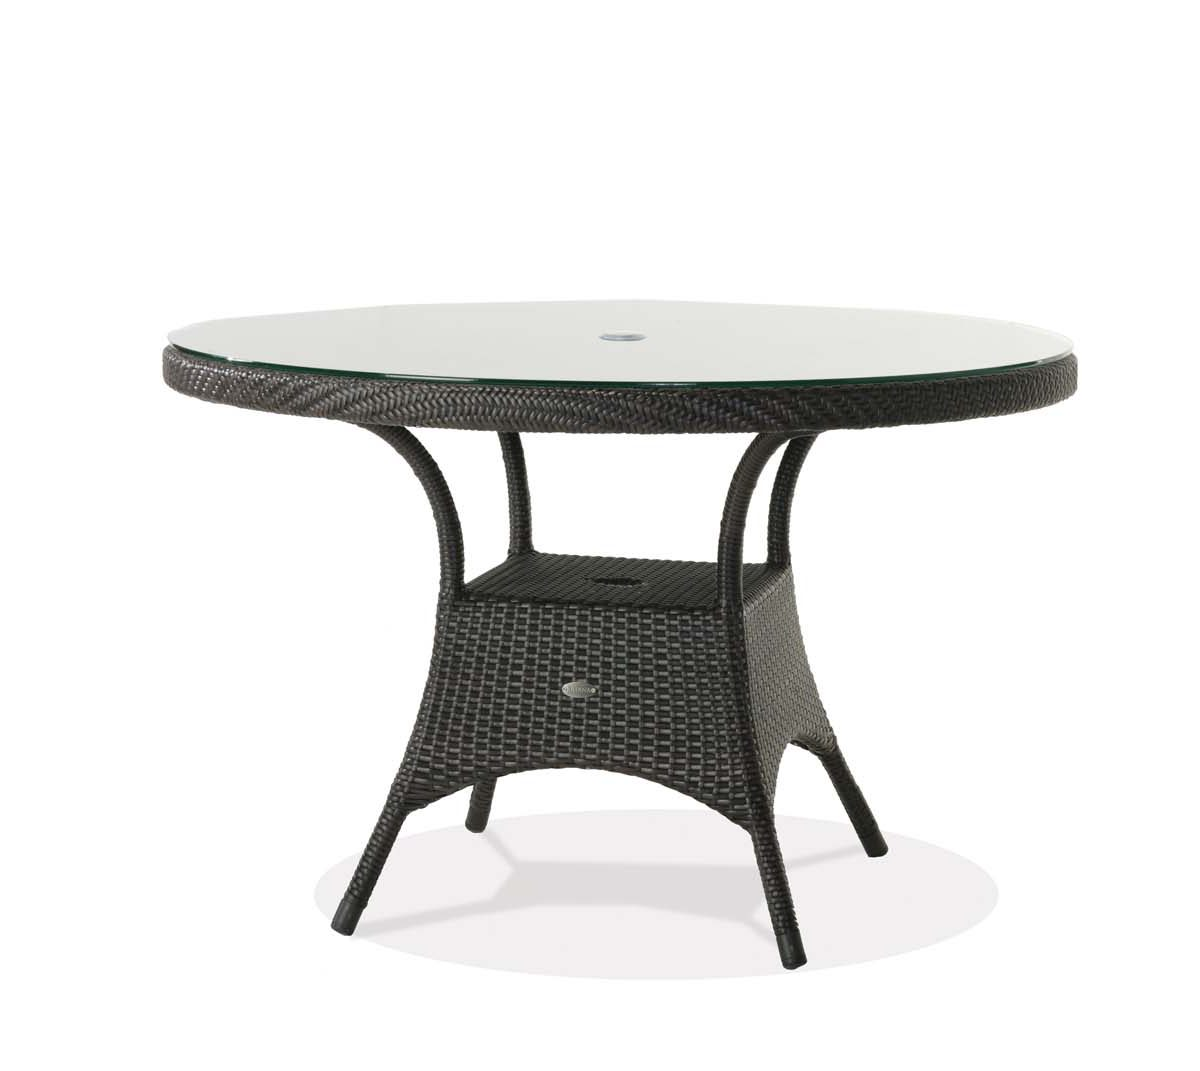 A round wicker palm harbor dining table